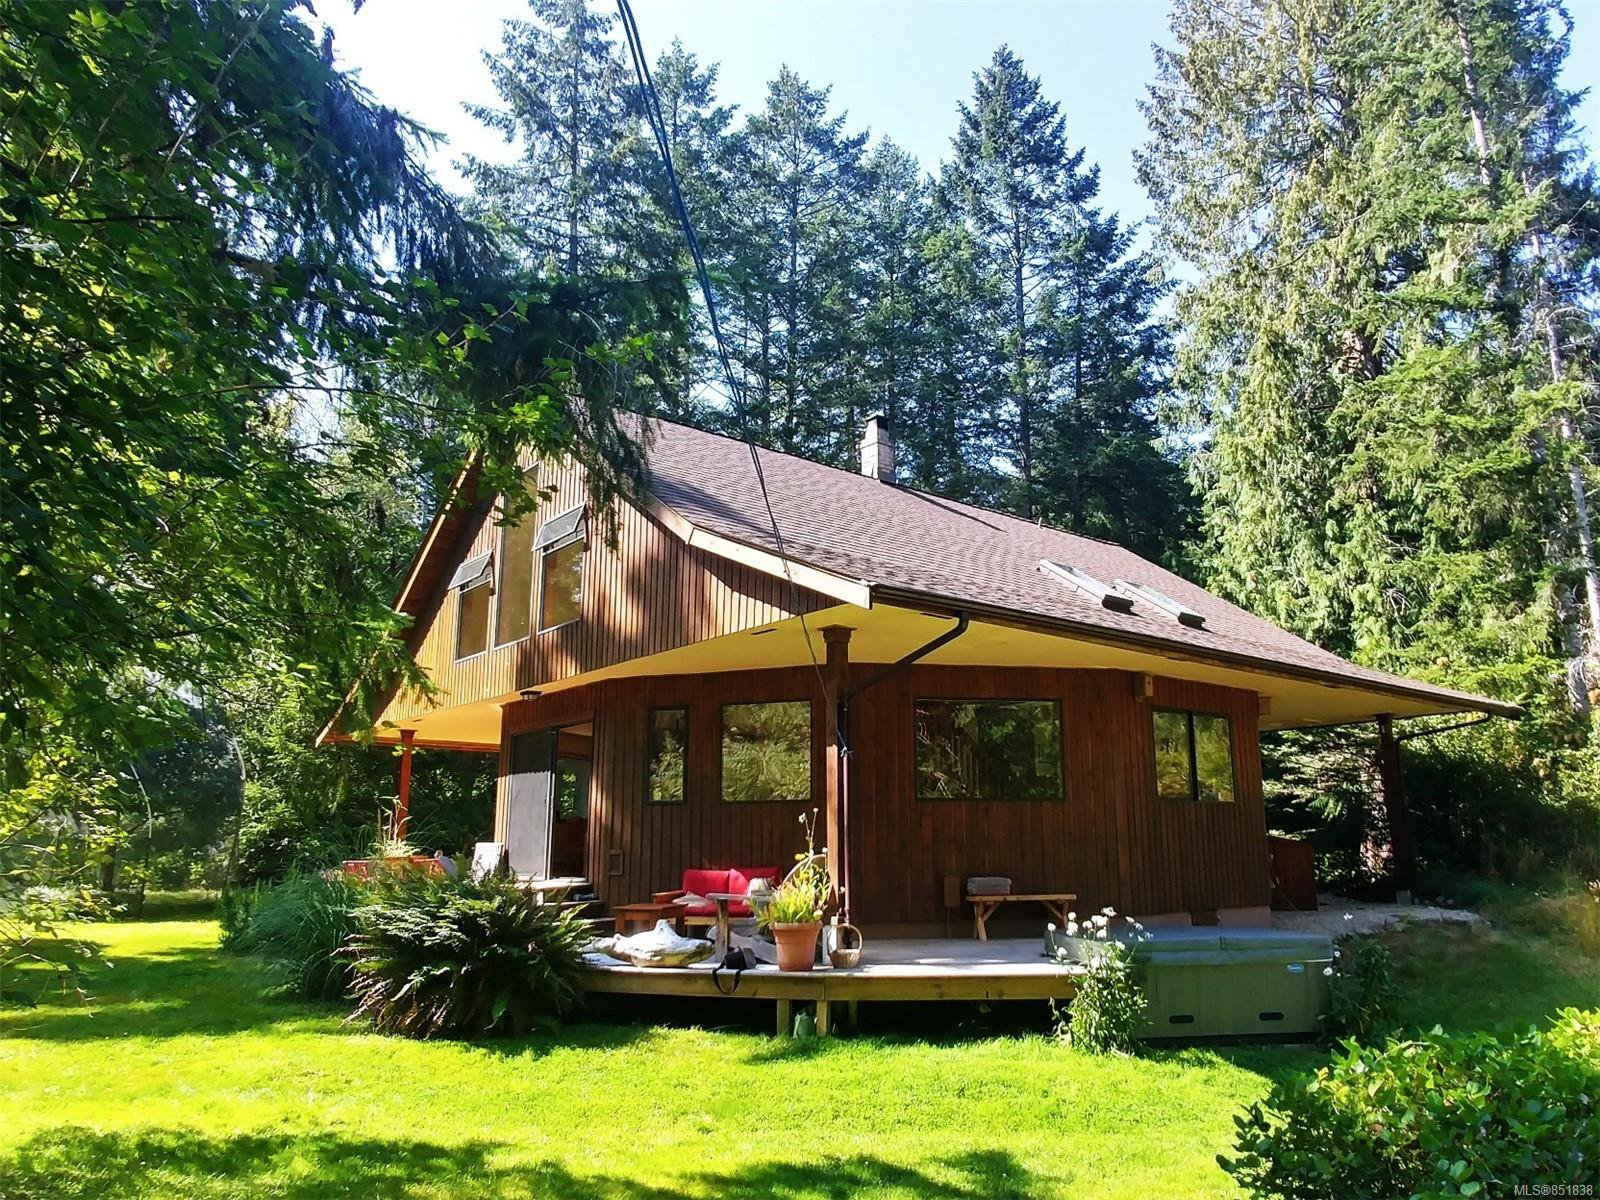 Main Photo: 1600 Perry Rd in : Isl Gabriola Island House for sale (Islands)  : MLS®# 851838